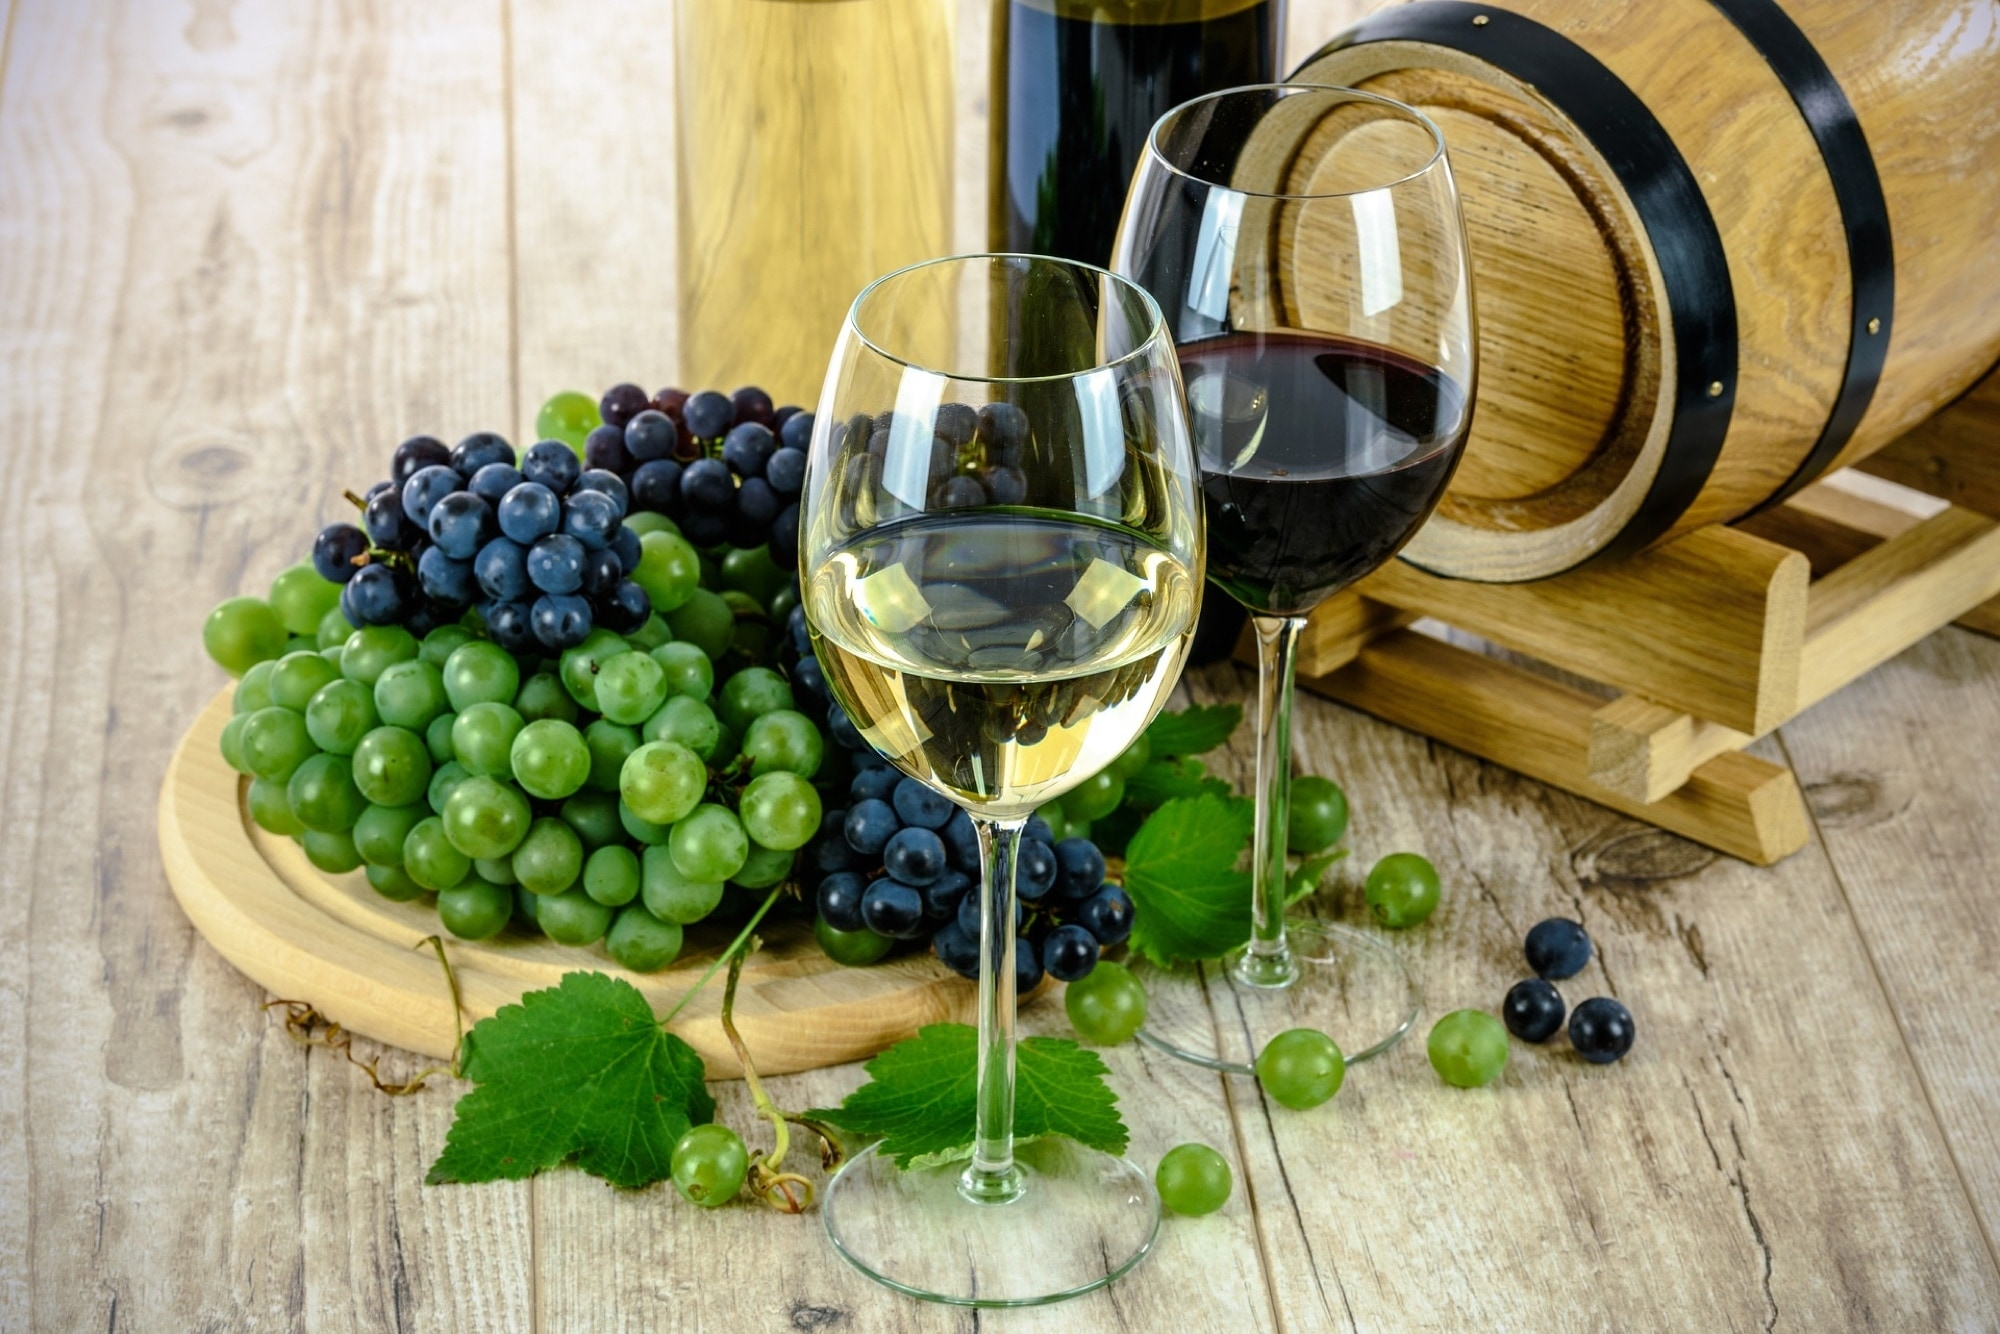 Wine and grapes - Best Wine Apps for iPhone